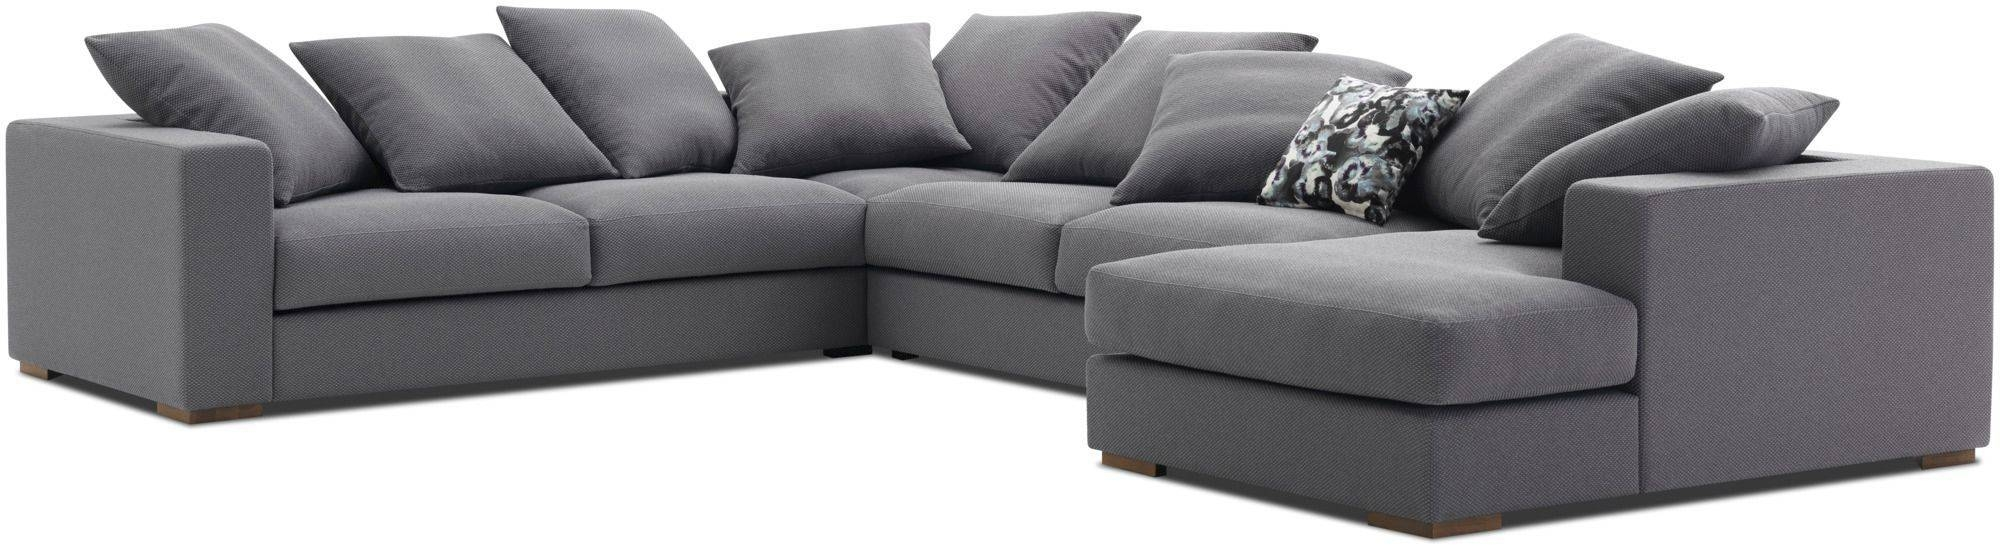 Corner Sofa / Modular / Contemporary / Leather - Cenova - Boconcept for Modular Corner Sofas (Image 14 of 30)